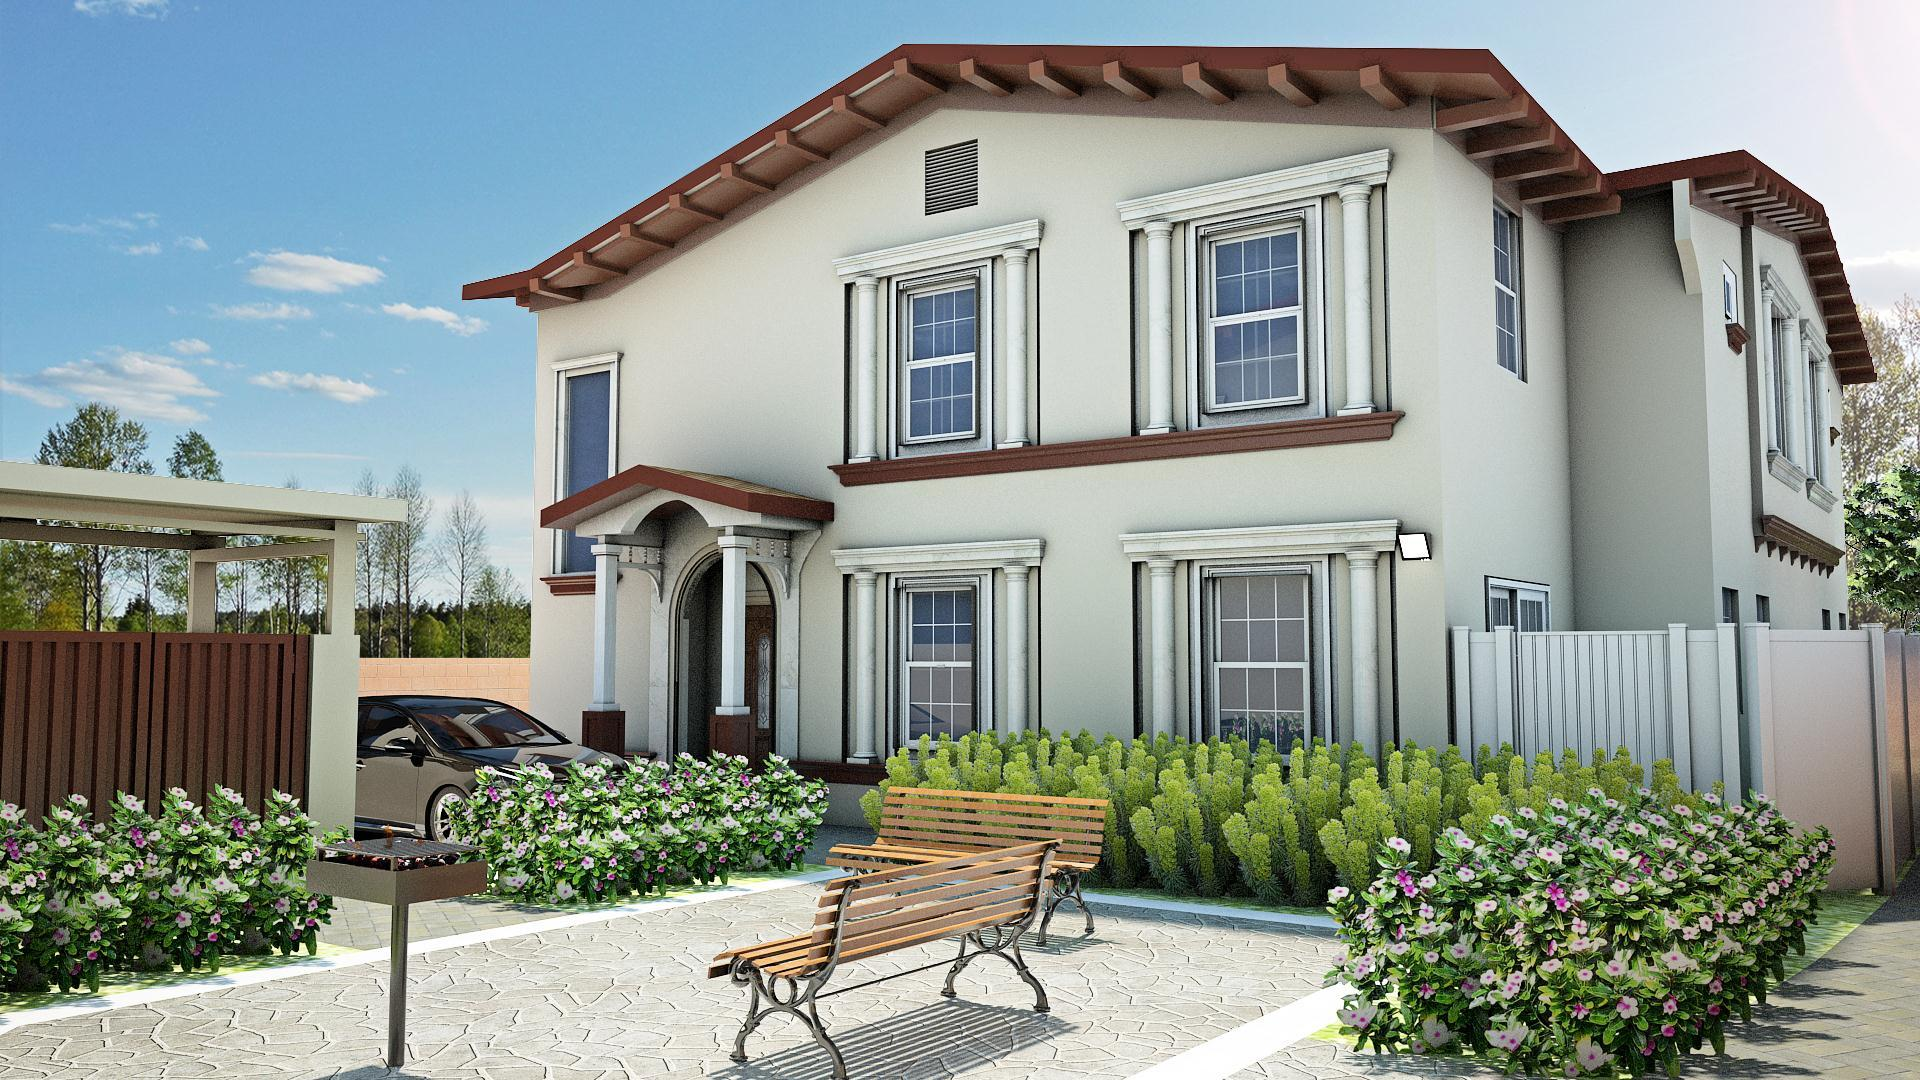 'Bel Square Town Homes' by belCon Investment LLC in Los Angeles